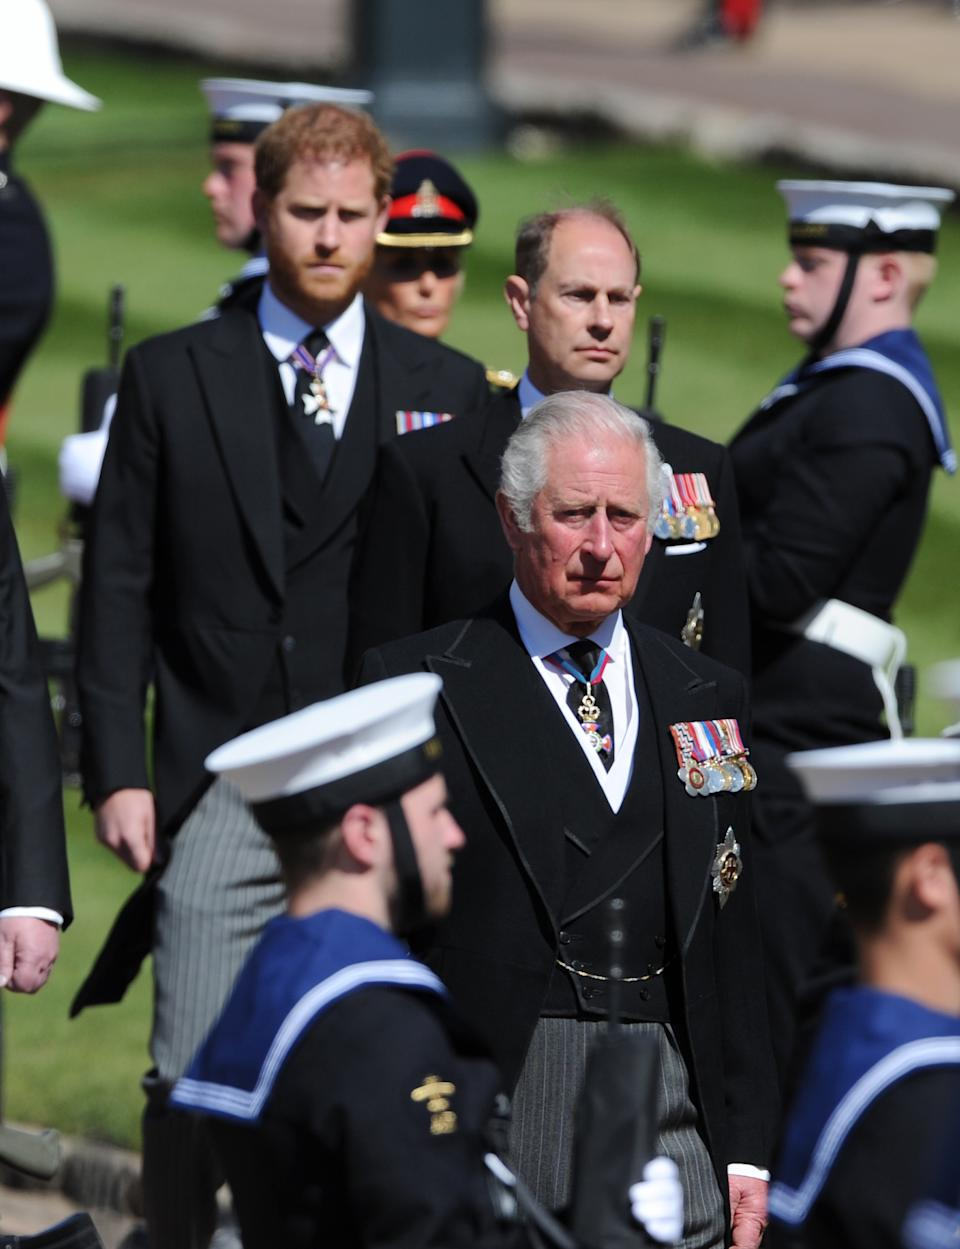 Prince Charles, Prince of Wales and other royal family members walk behind The Duke of Edinburgh's coffin